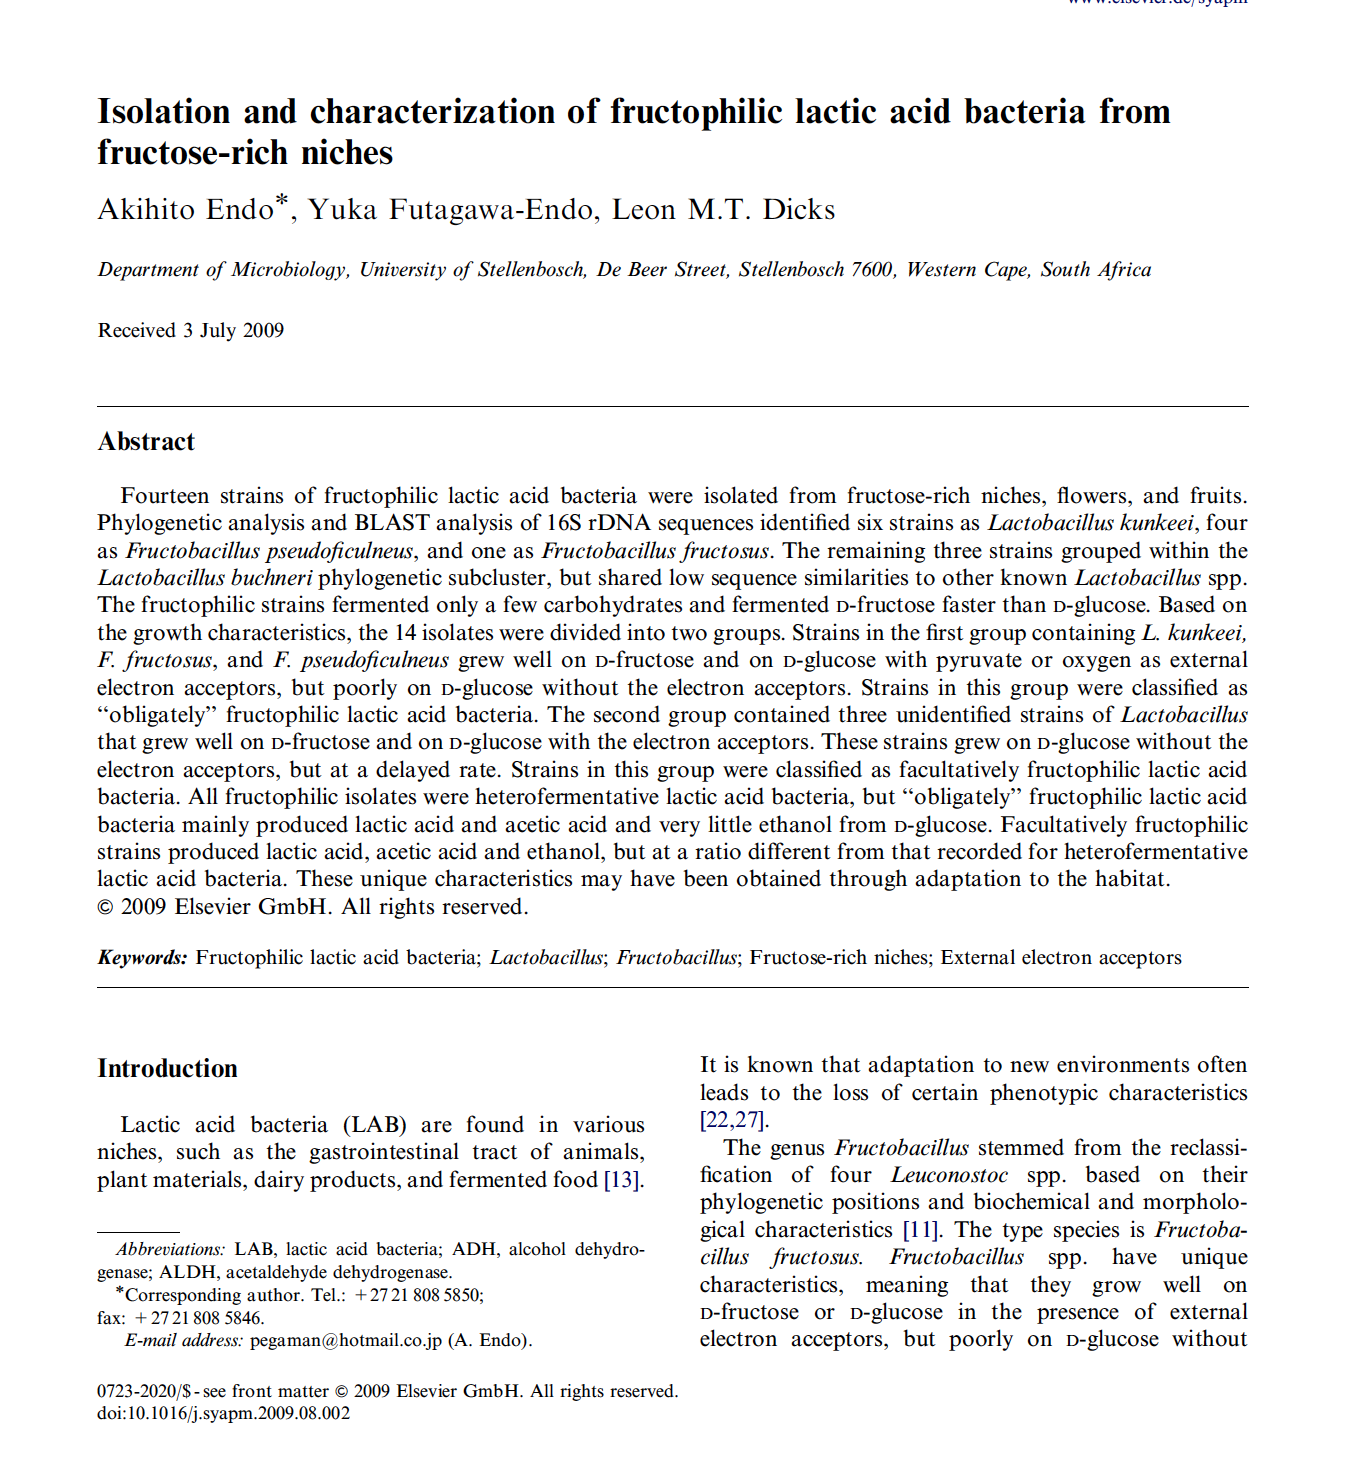 Isolation and characterization of fructophilic lactic acid